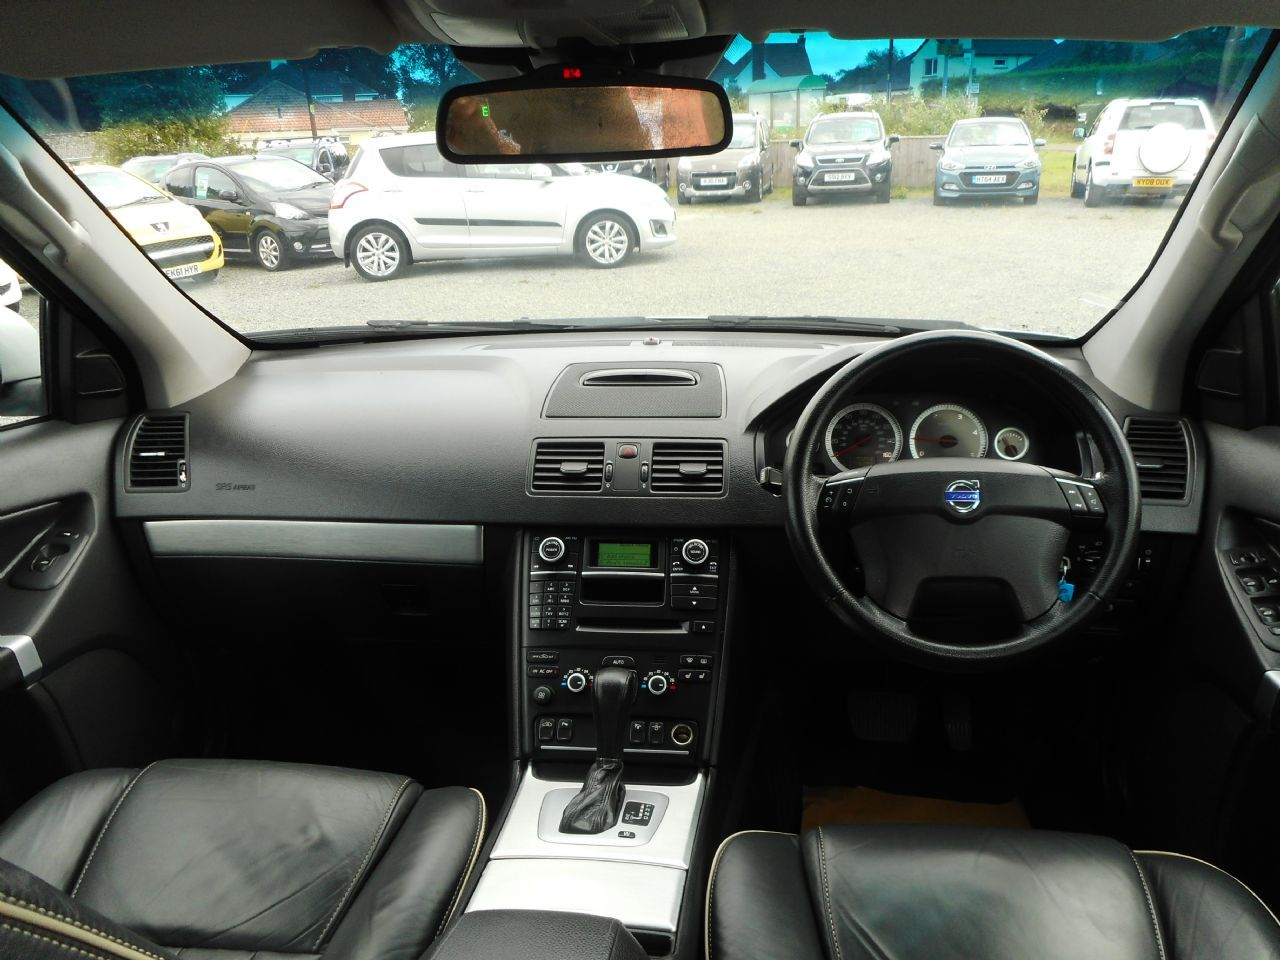 VOLVO XC90 D5 AWD (200 bhp) SE Lux Geartronic (2011) - Picture 13